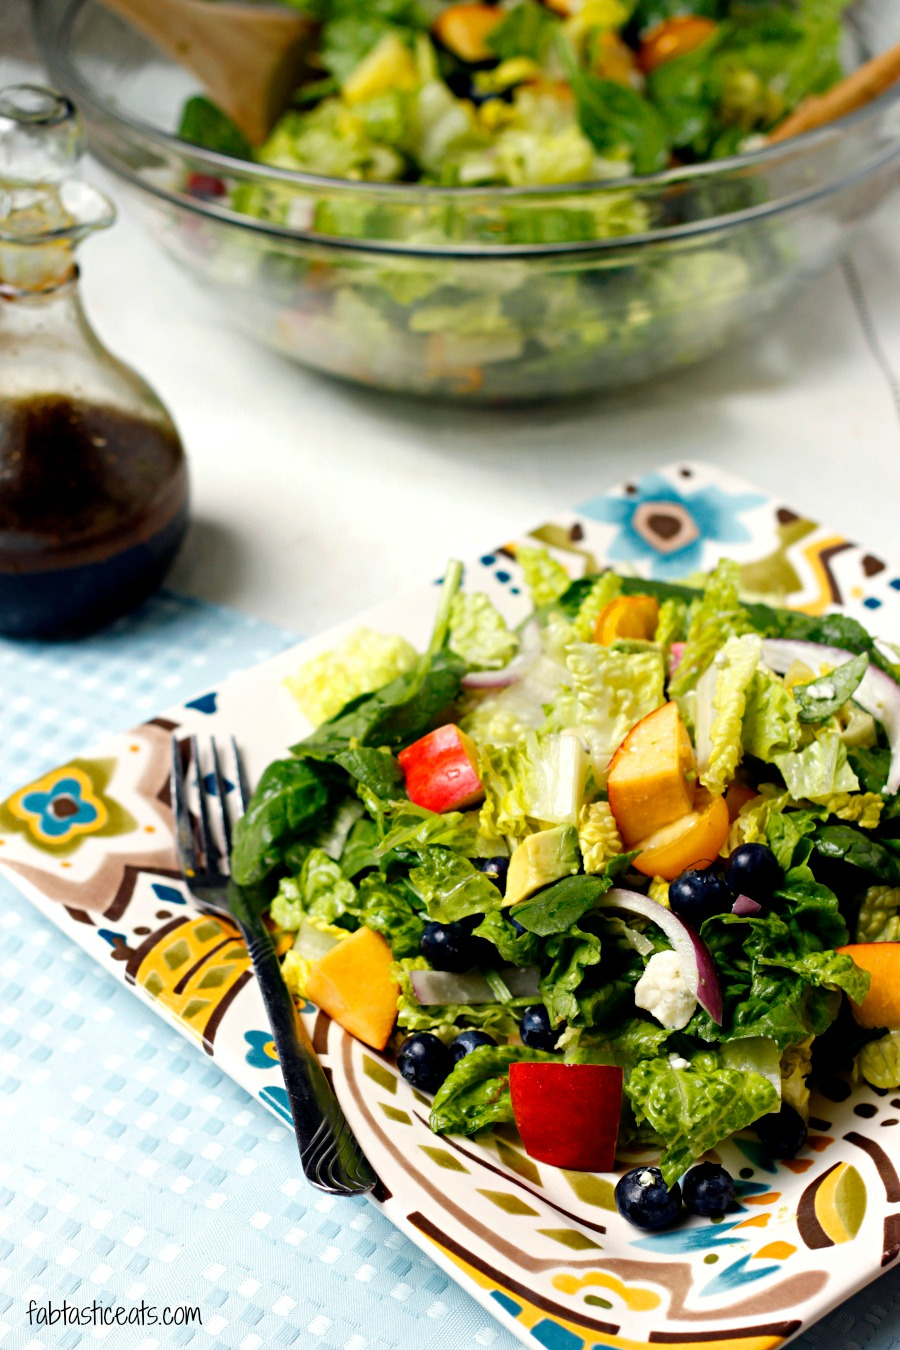 ... and Nectarine Salad with Avocado Citrus Vinaigrette | Fabtastic Eats